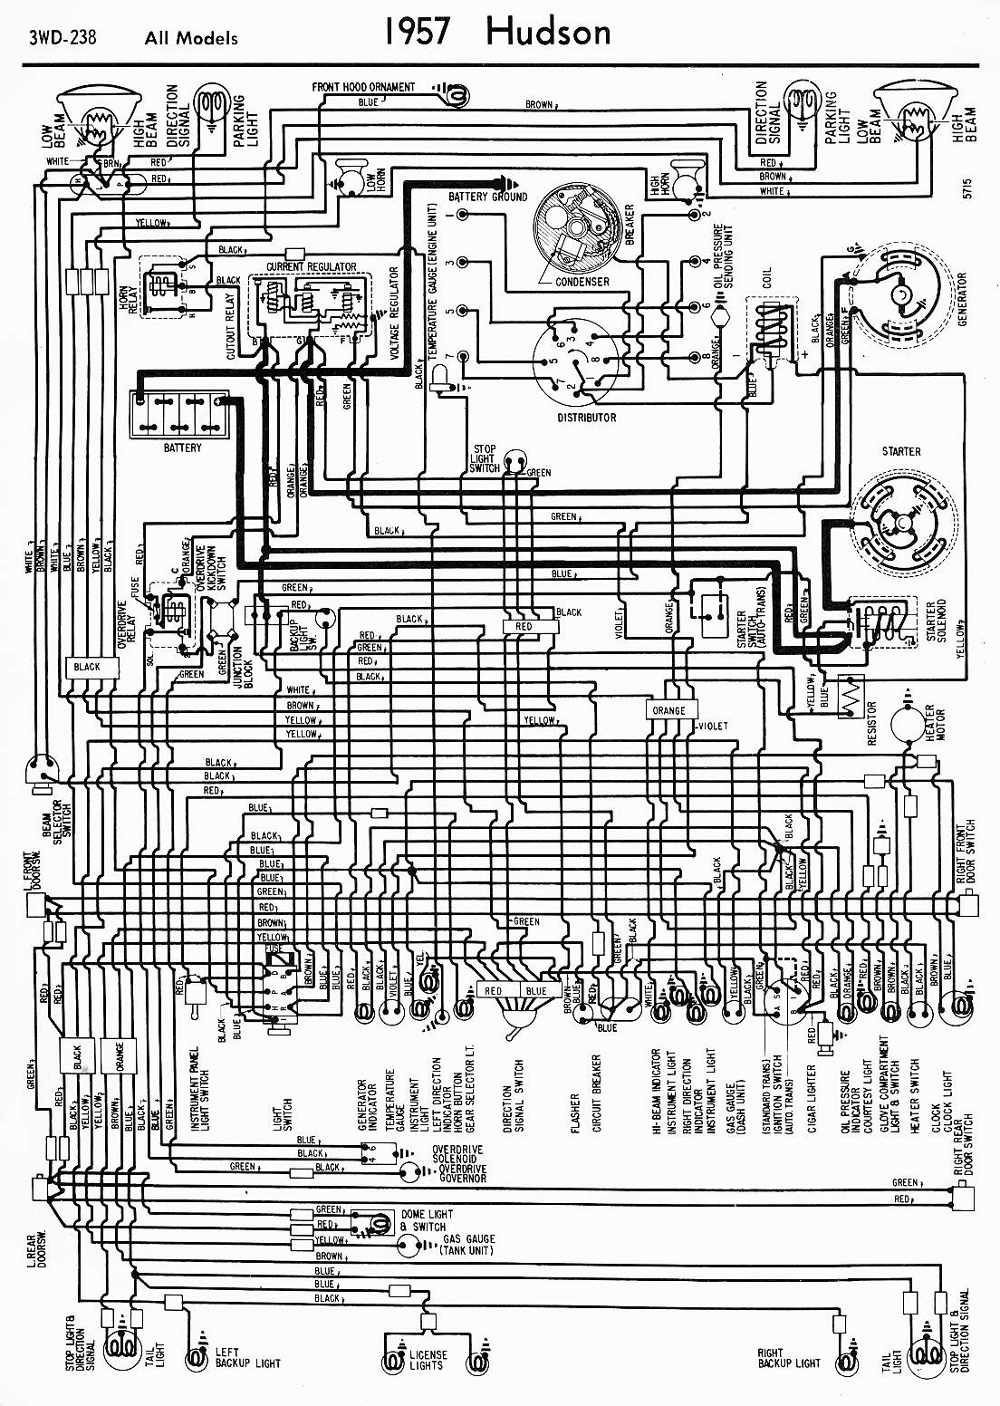 Hot Water Heater Wiring Diagram Keystone Hornet Electrical Fuse Box Schematic Diagrams All Kind Of